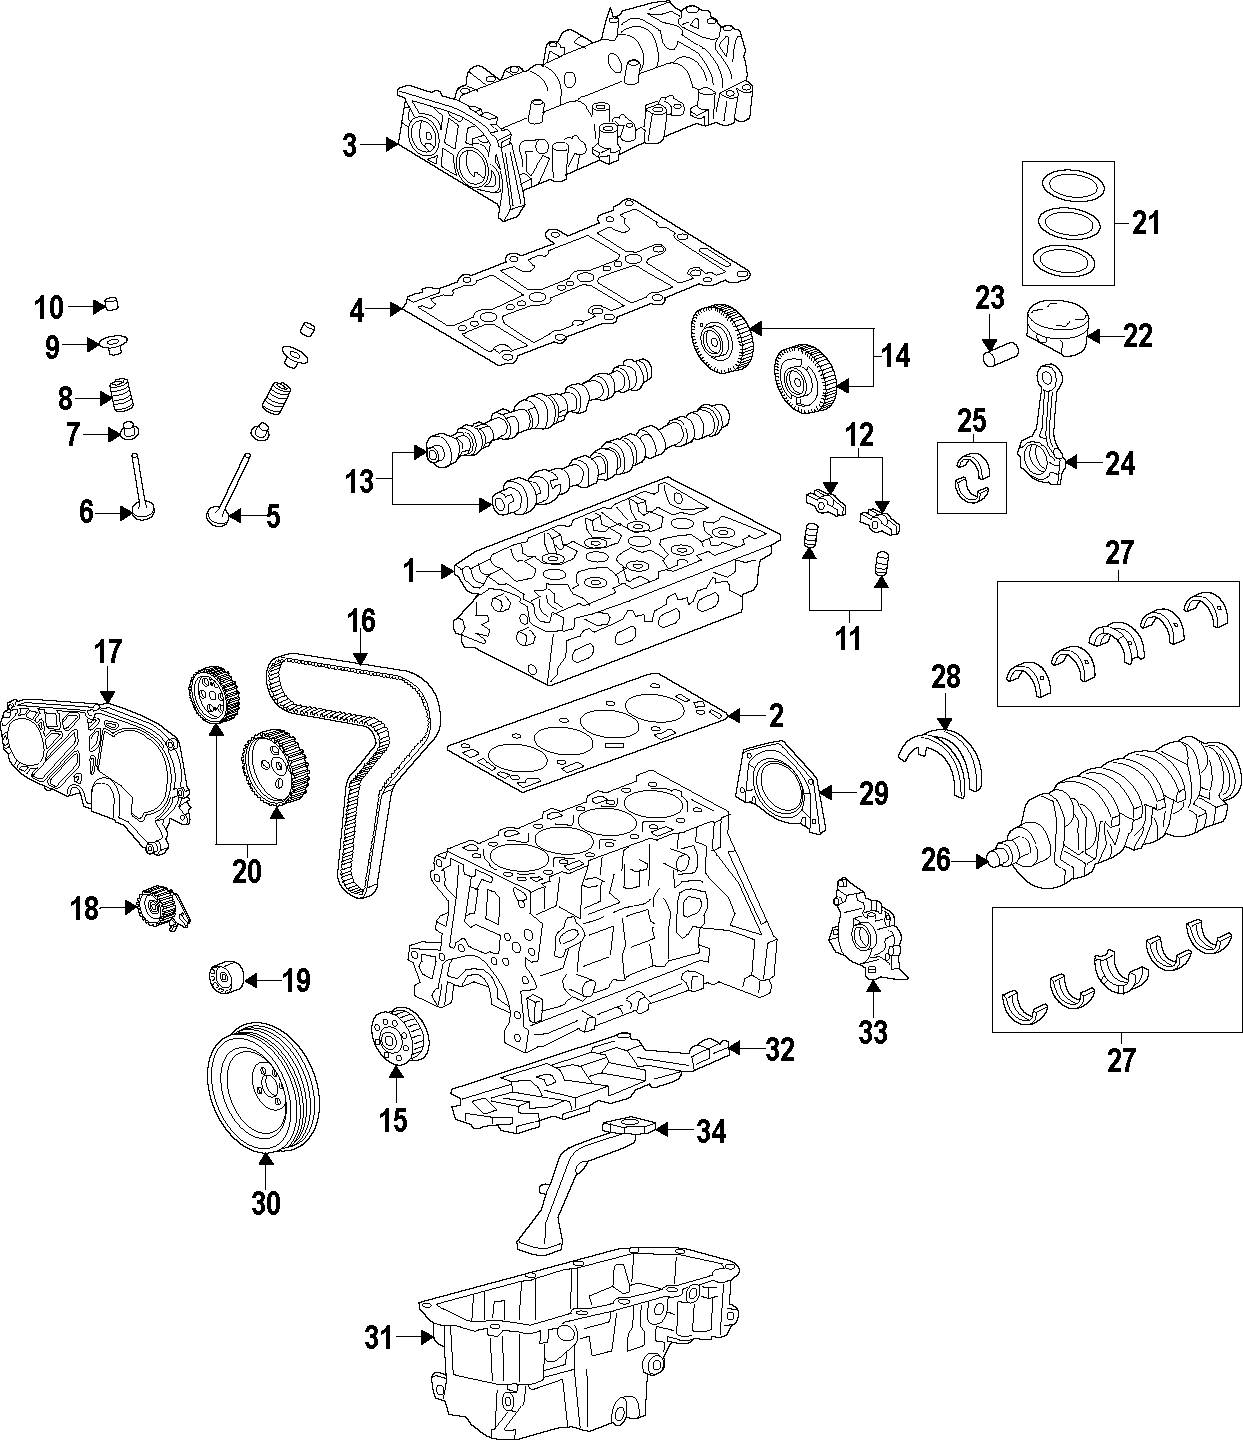 Chevrolet Cruze Engine Rocker Arm. Engine Rocker Arm